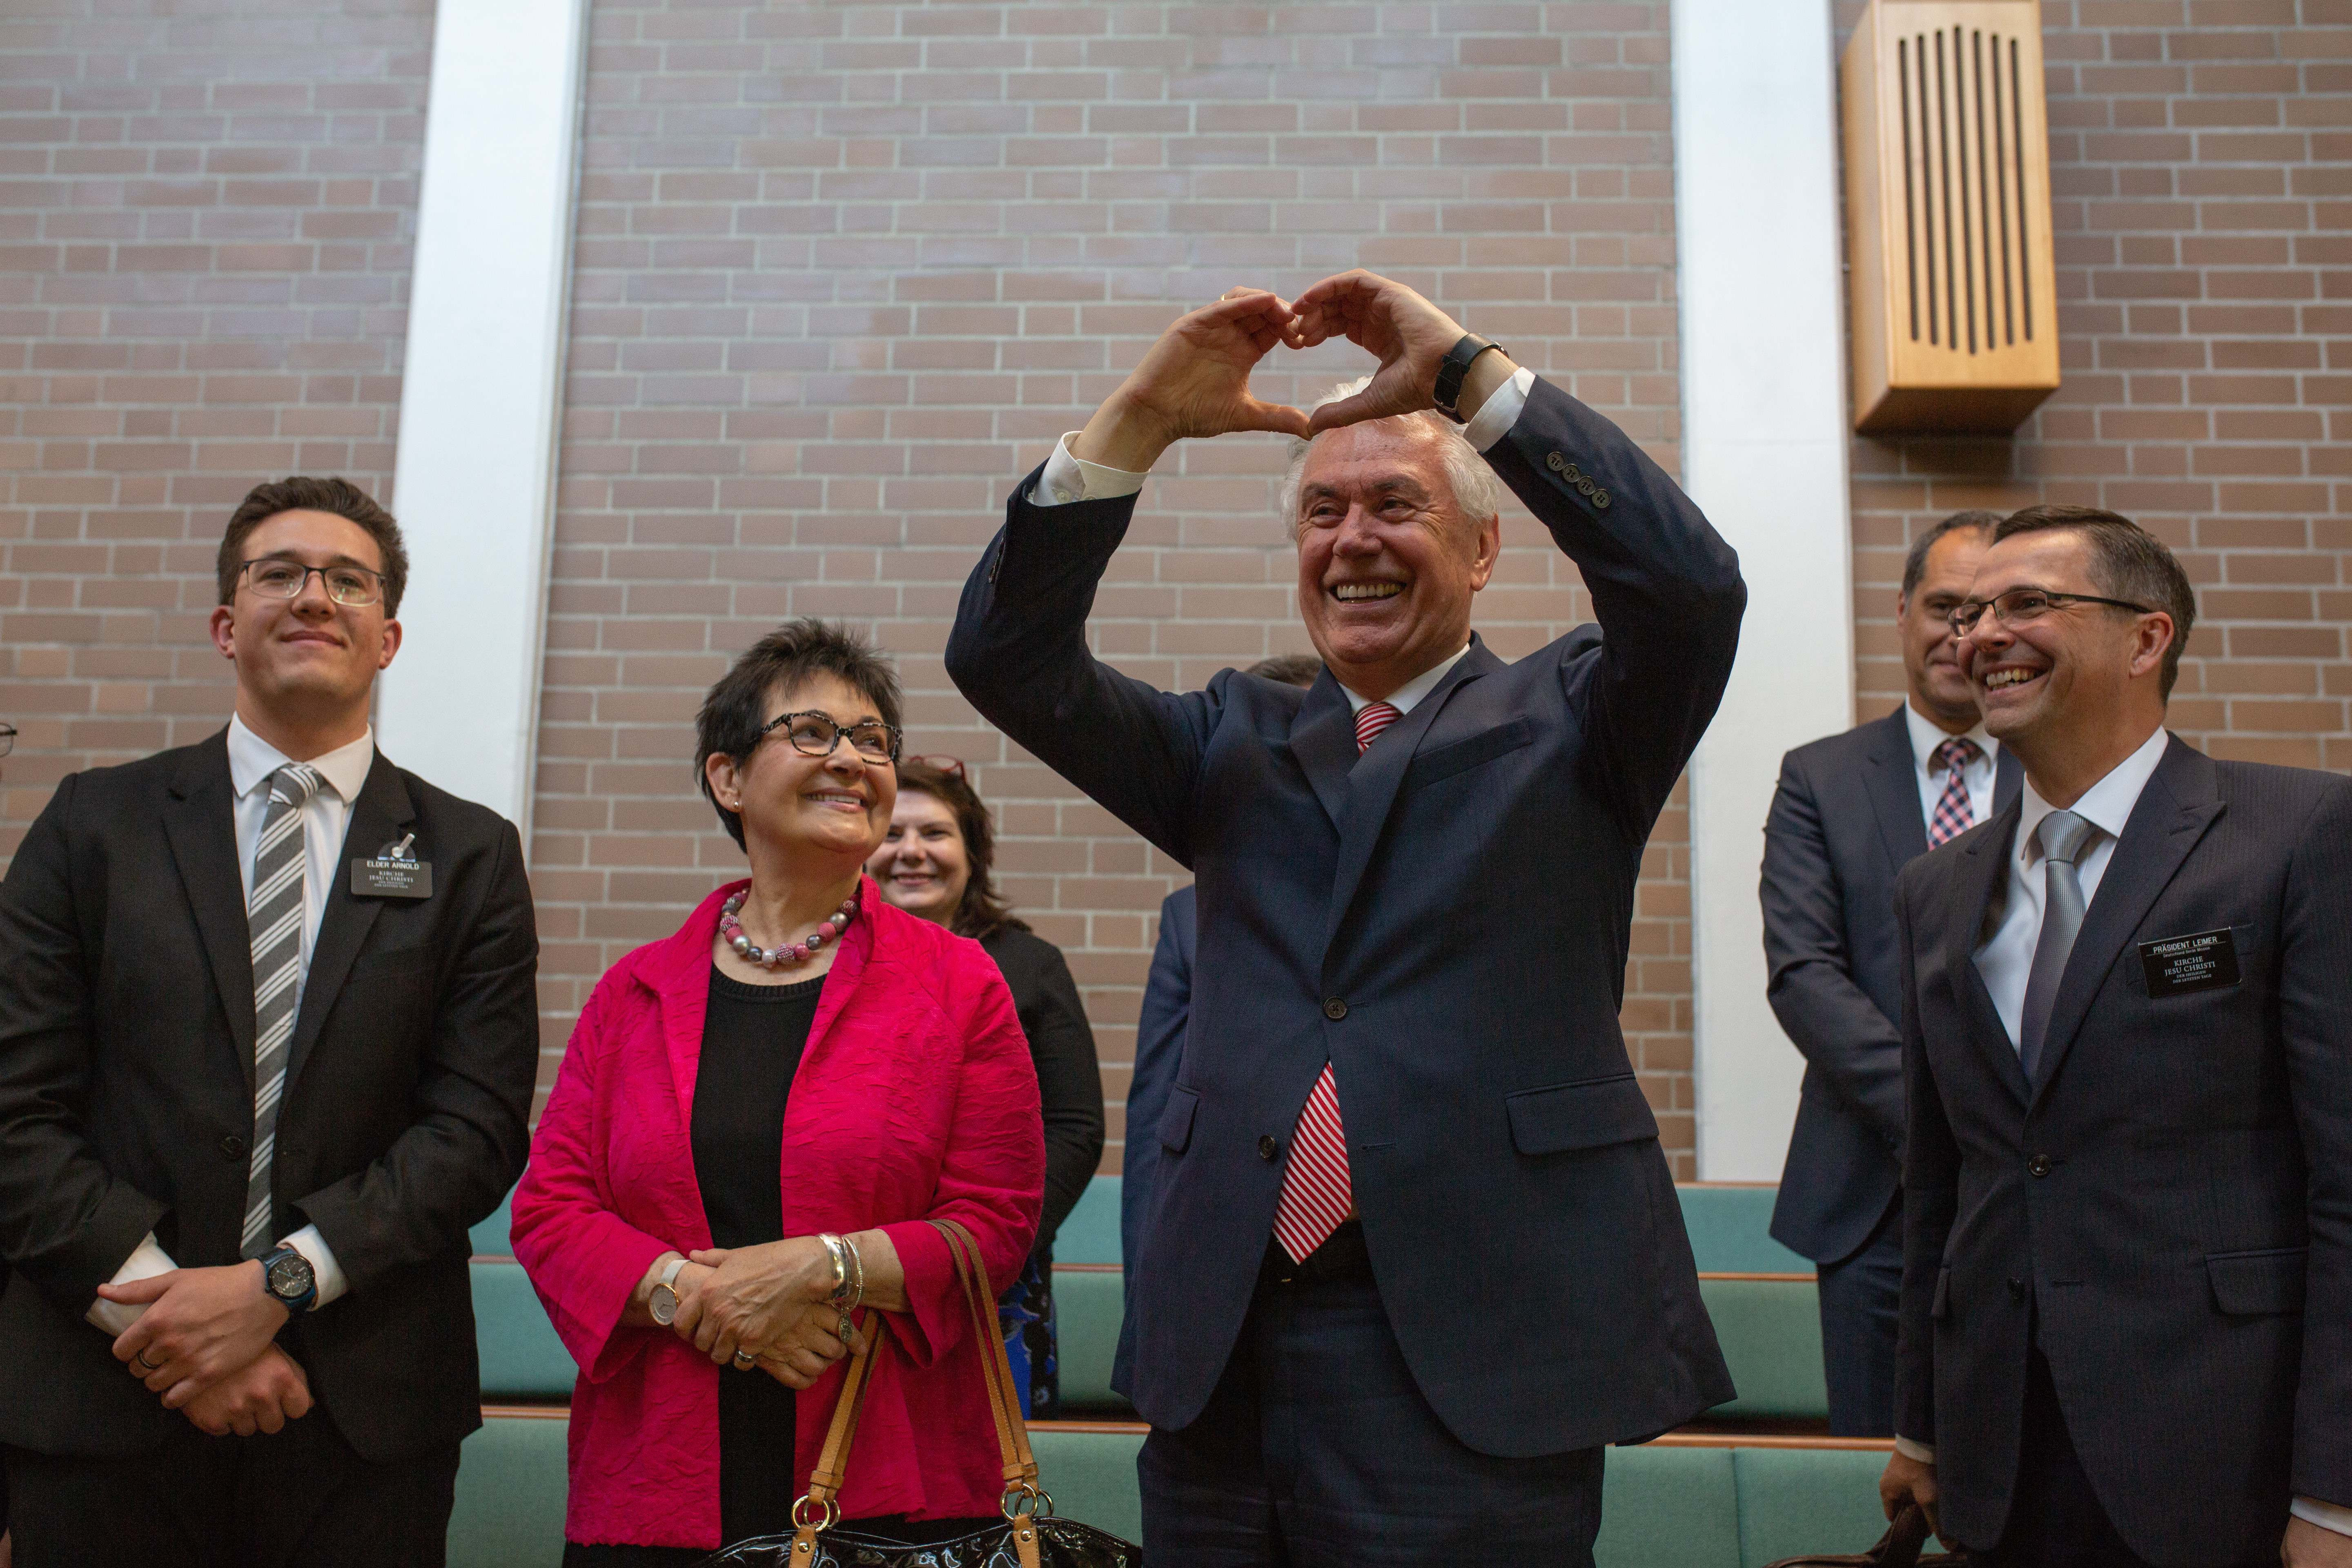 Elder Dieter F. Uchtdorf clasps his hands together to form a heart after speaking to missionaries of the Germany Berlin Mission during a mission conference in Berlin on April 26, 2019.